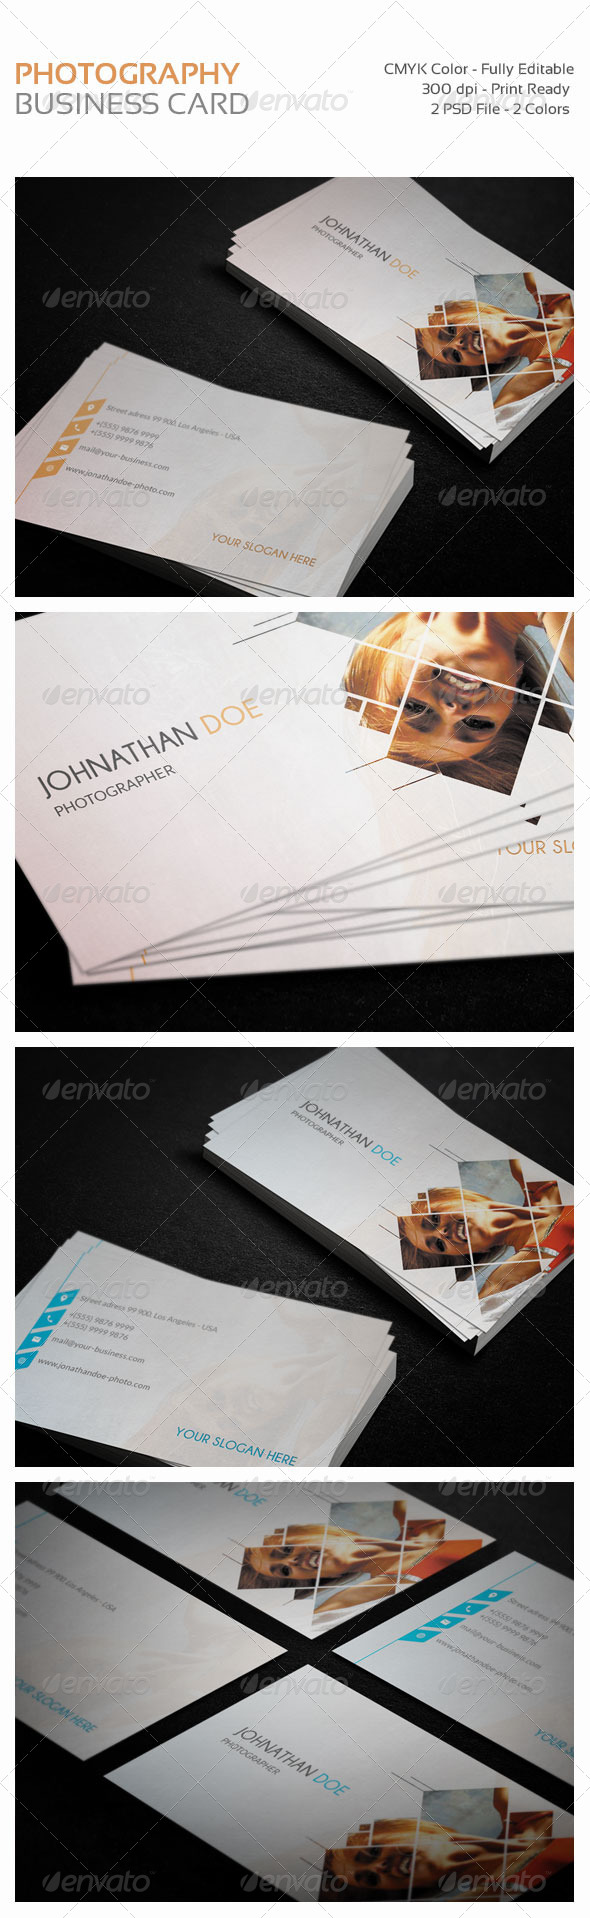 GraphicRiver Photography Personnal Business Cards 2 Colors 8391251